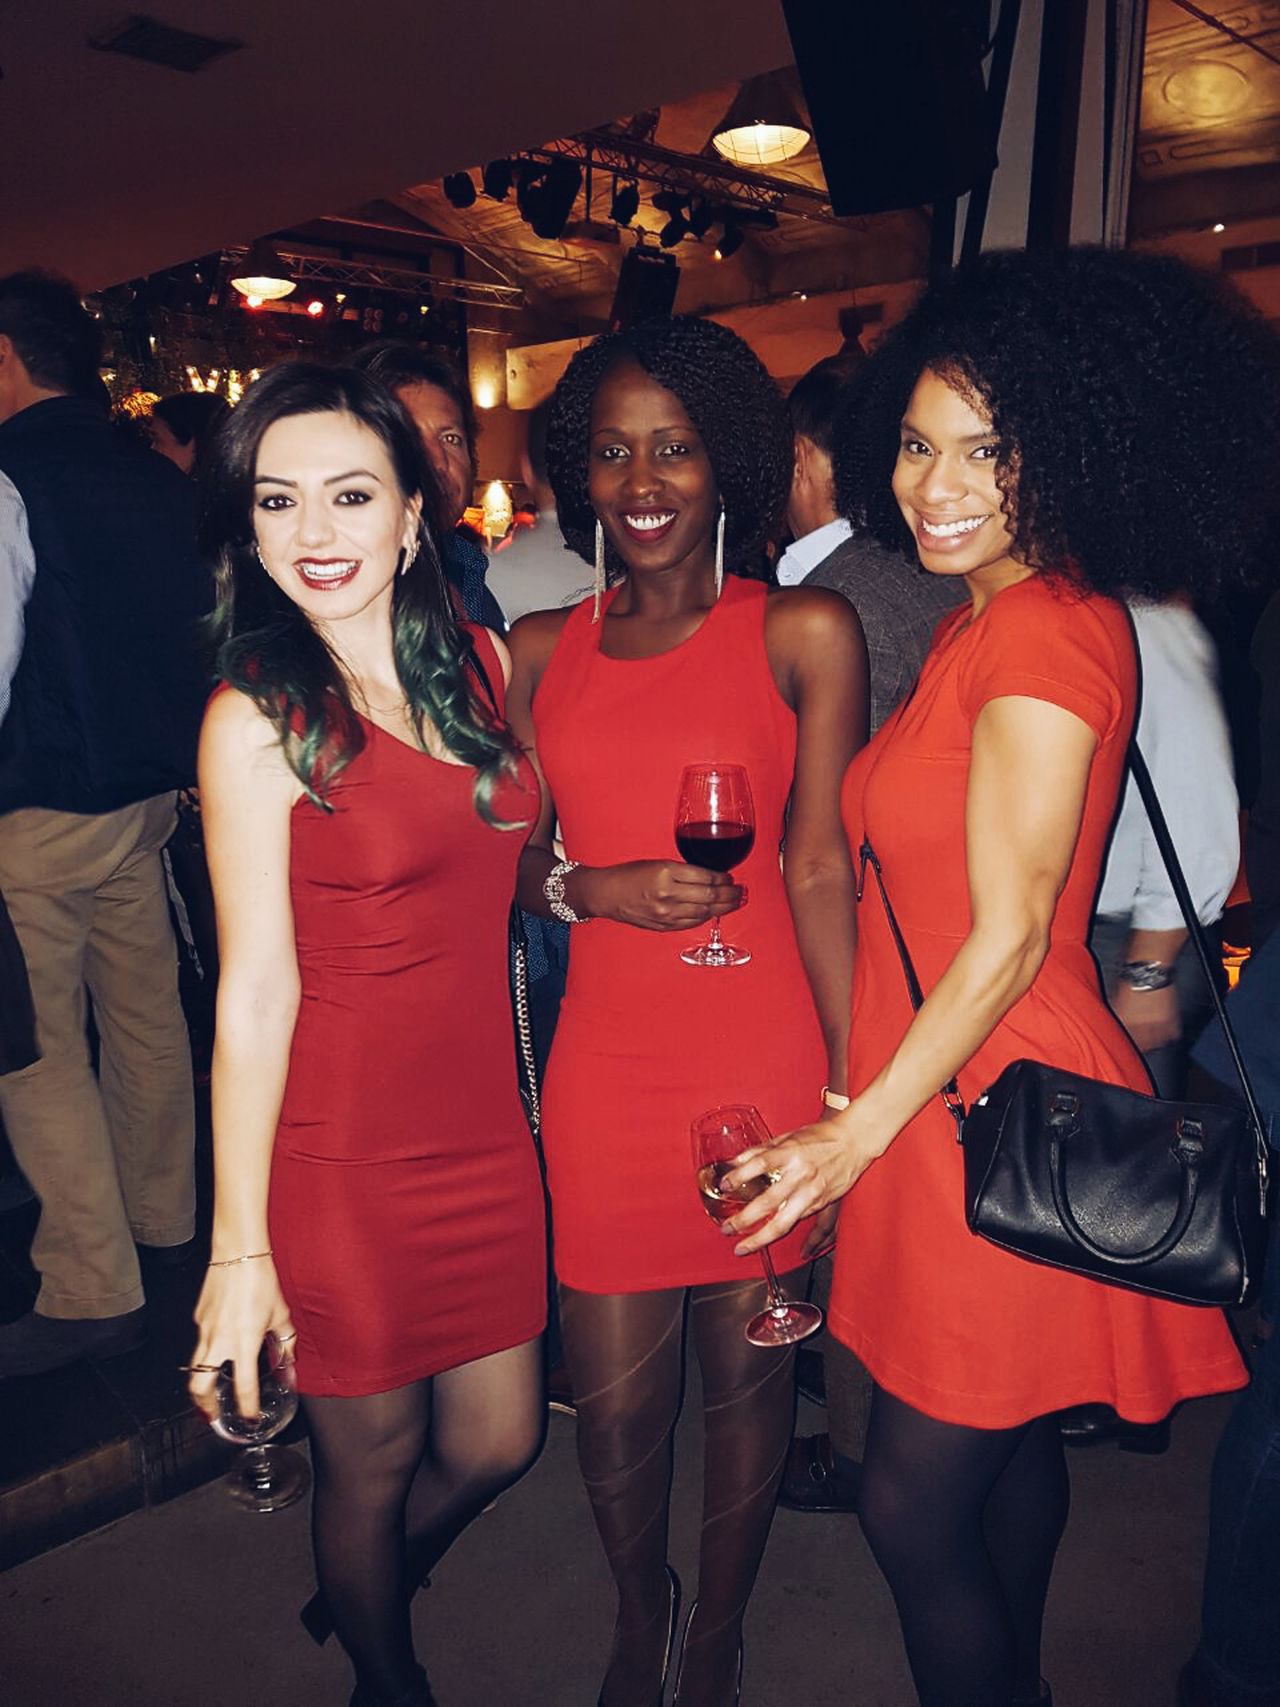 My Year My View Nightlife Night Young Adult Red Party - Social Event Nightclub Friendship Fashion Fun Adults Only Happiness Lifestyles Smiling People Young Women Multi Colored Beautiful People Cheerful Having Fun With Friends Friends Togetherness Real People Urban Red Dress